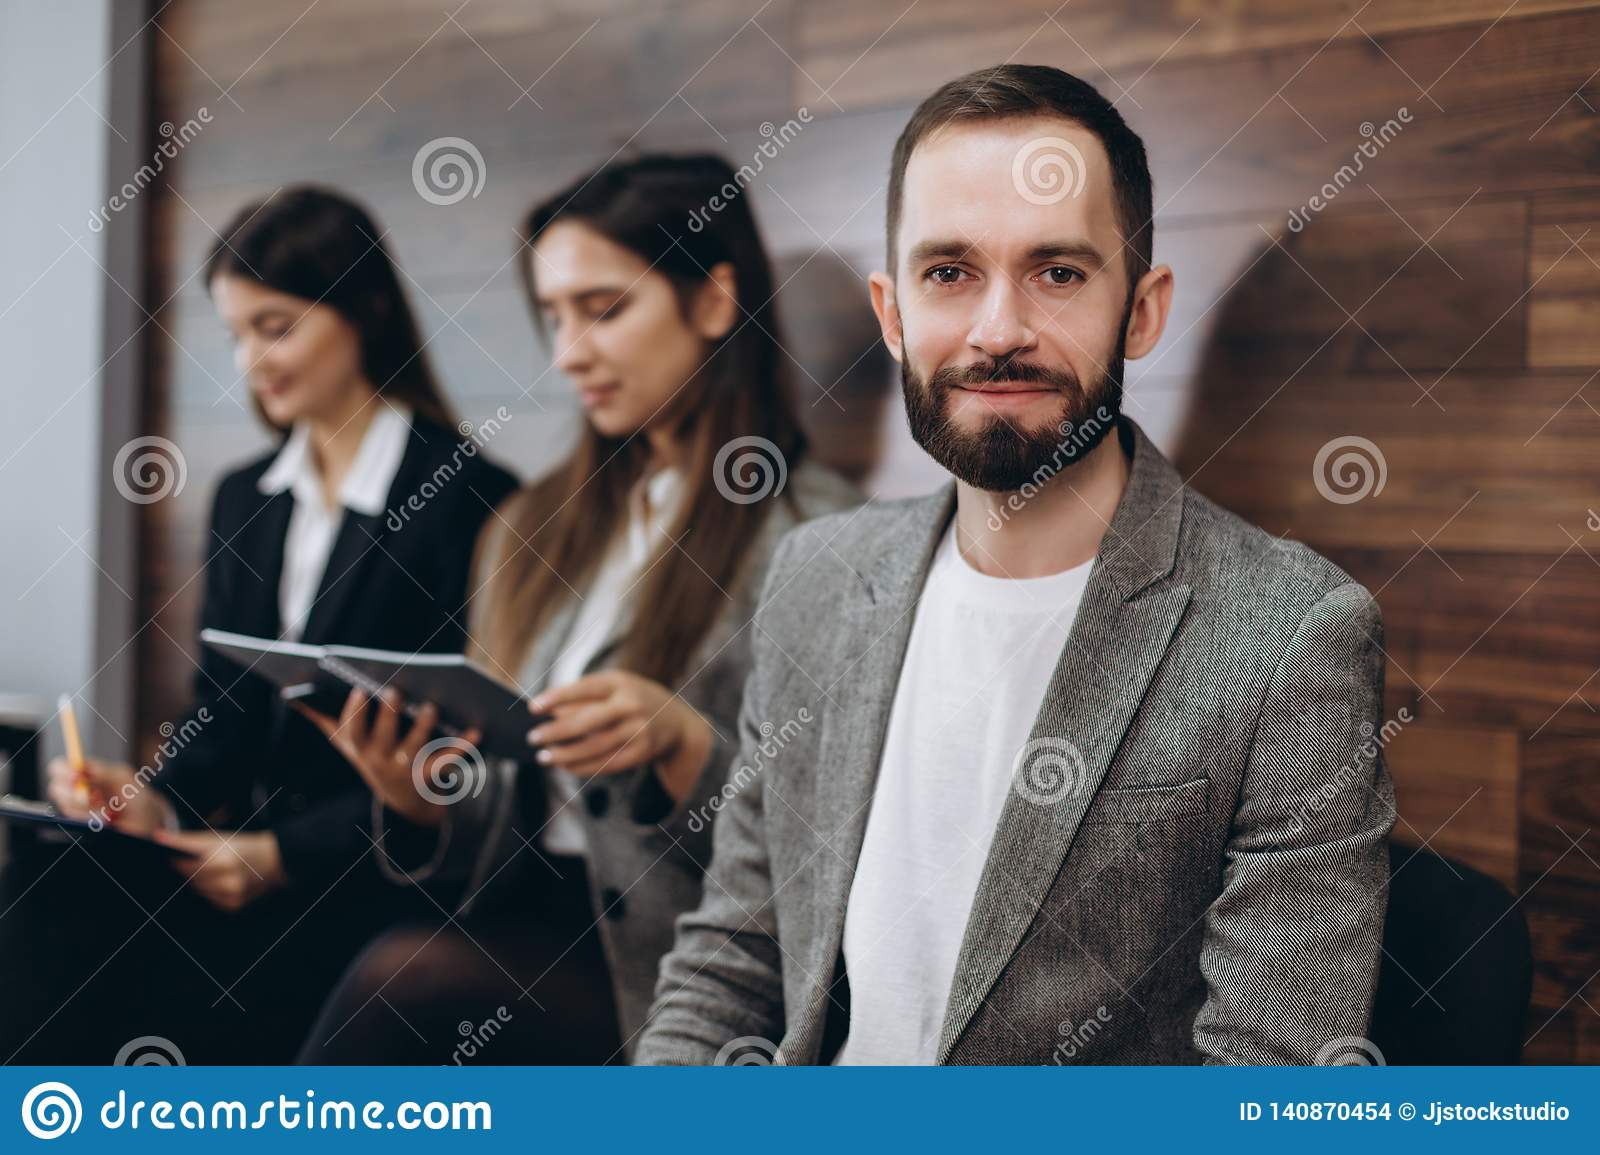 Diverse young businesspeople students friends sitting together in chairs in queue using mobile phones wait job interview or